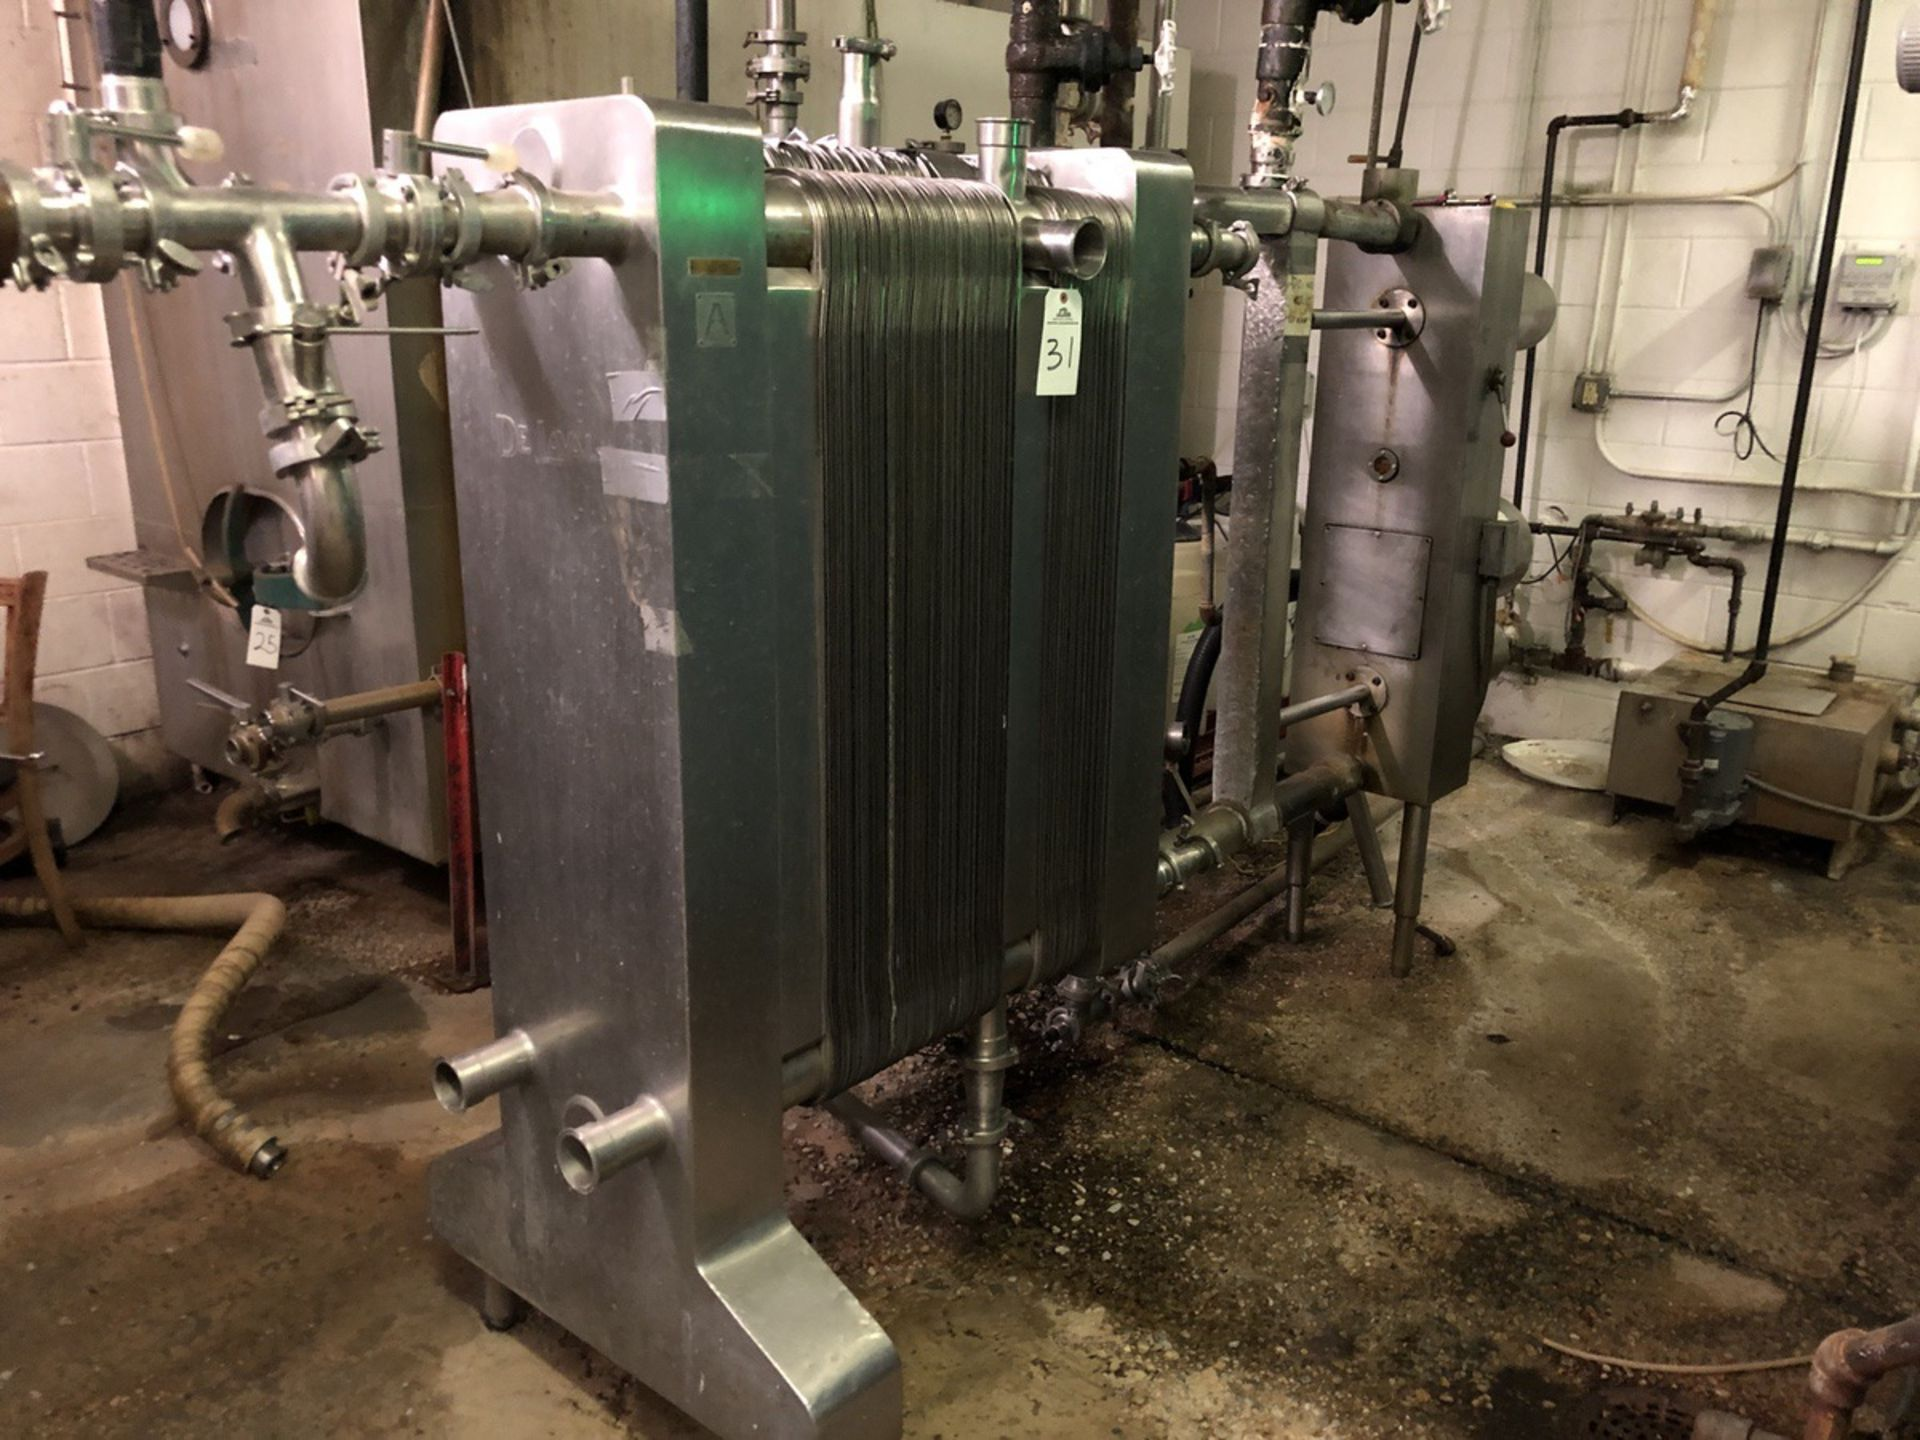 Lot 31 - De Laval P14-RC Plate and Frame Heat Exchanger (Used for Wort Chilling), S/N: 3259 | Rig Fee: $550